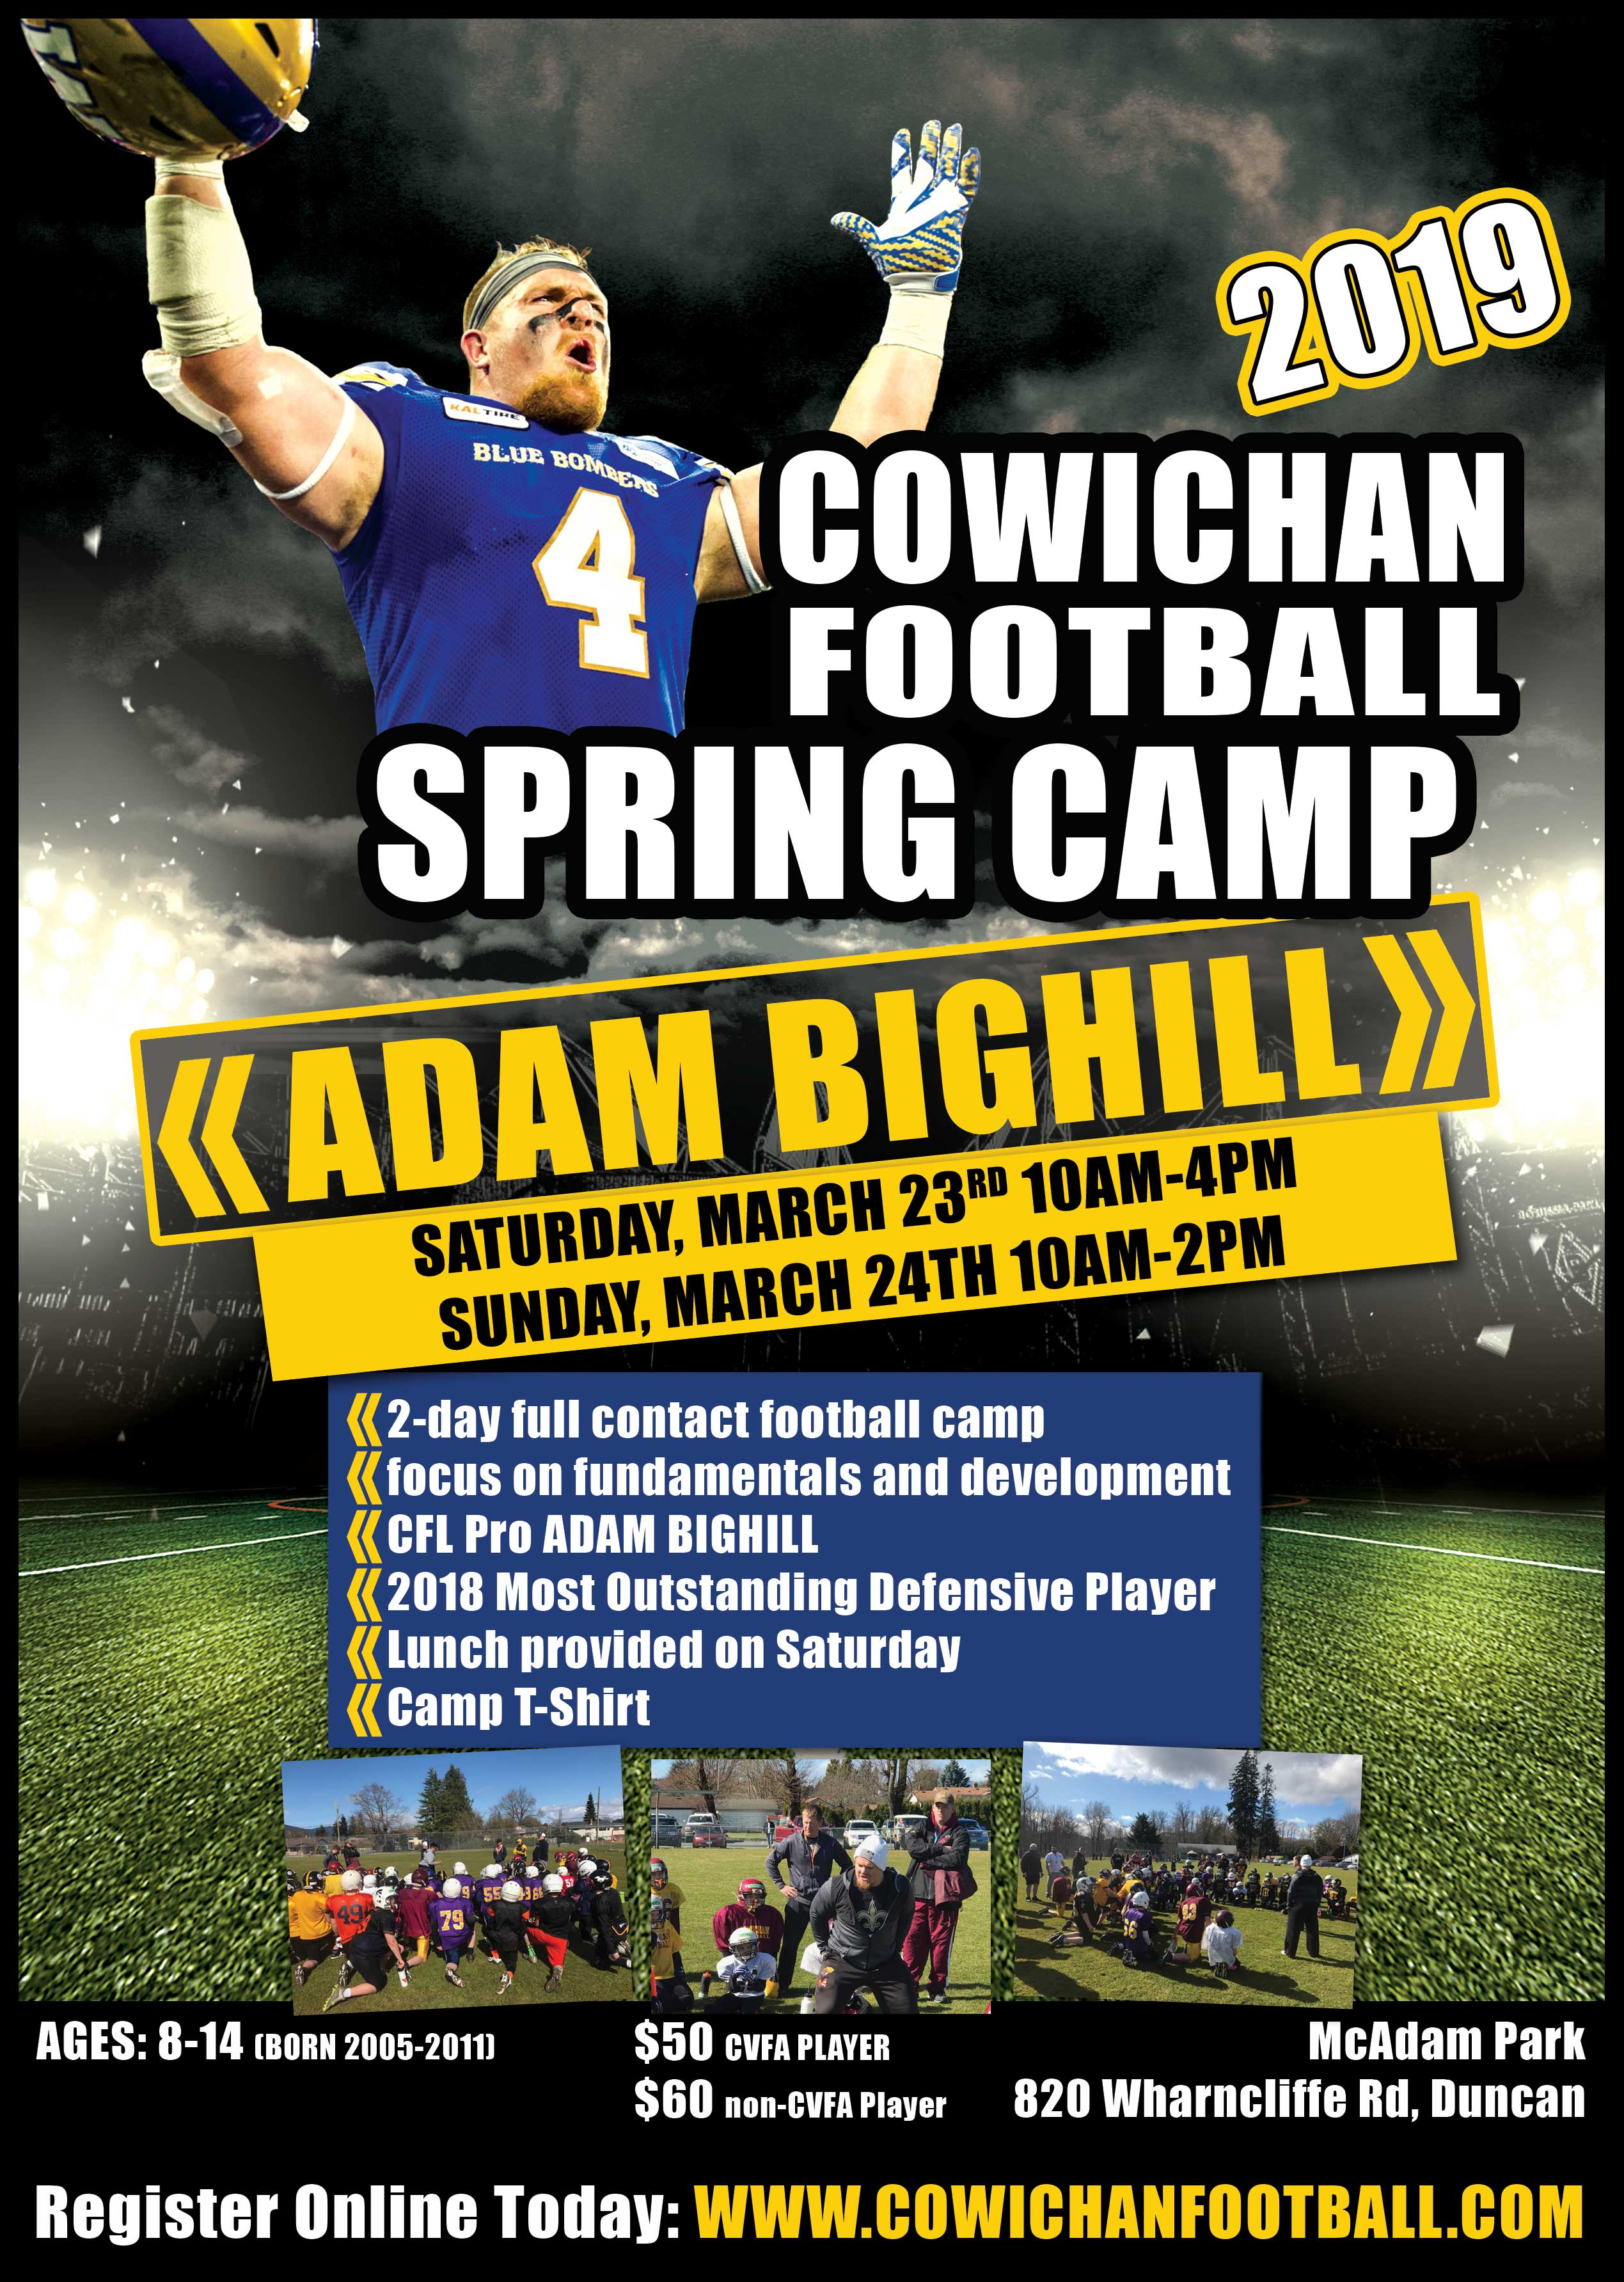 2019 Spring Camp With Bighill Cowichan Valley Football